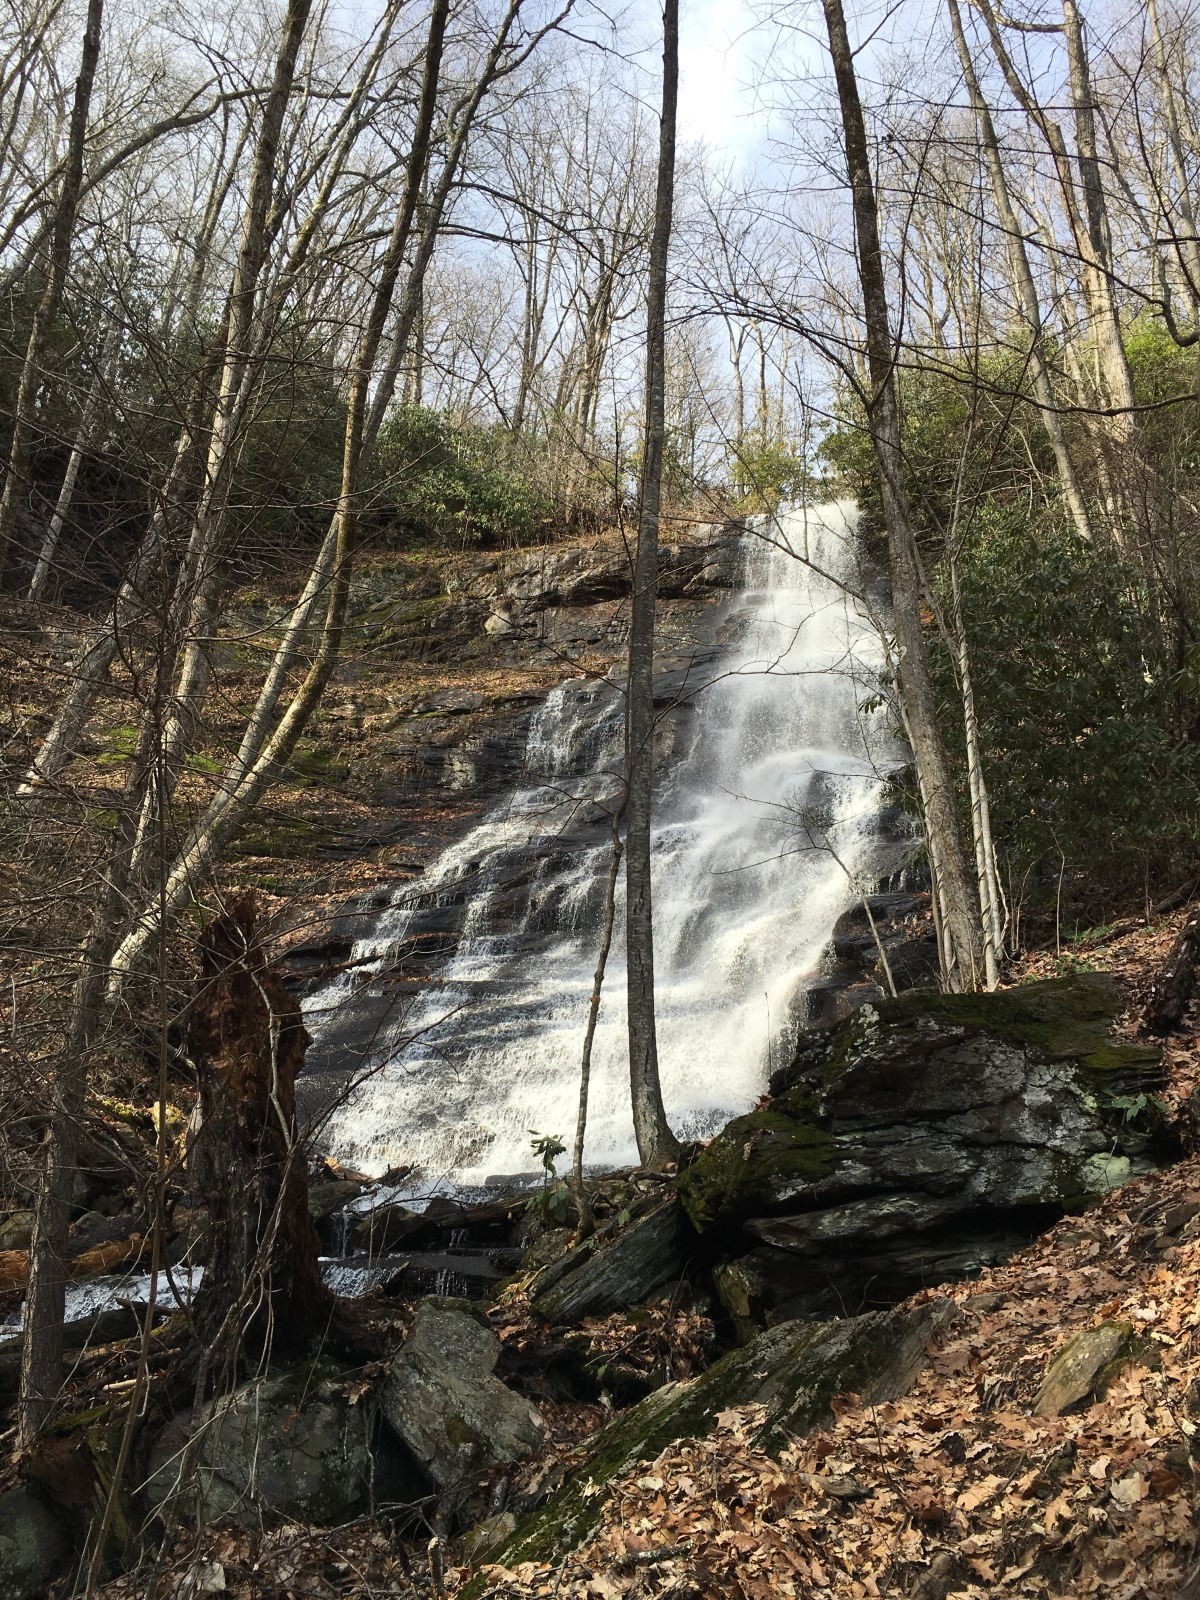 Log Hollow Falls and Falls on TributaryStreams